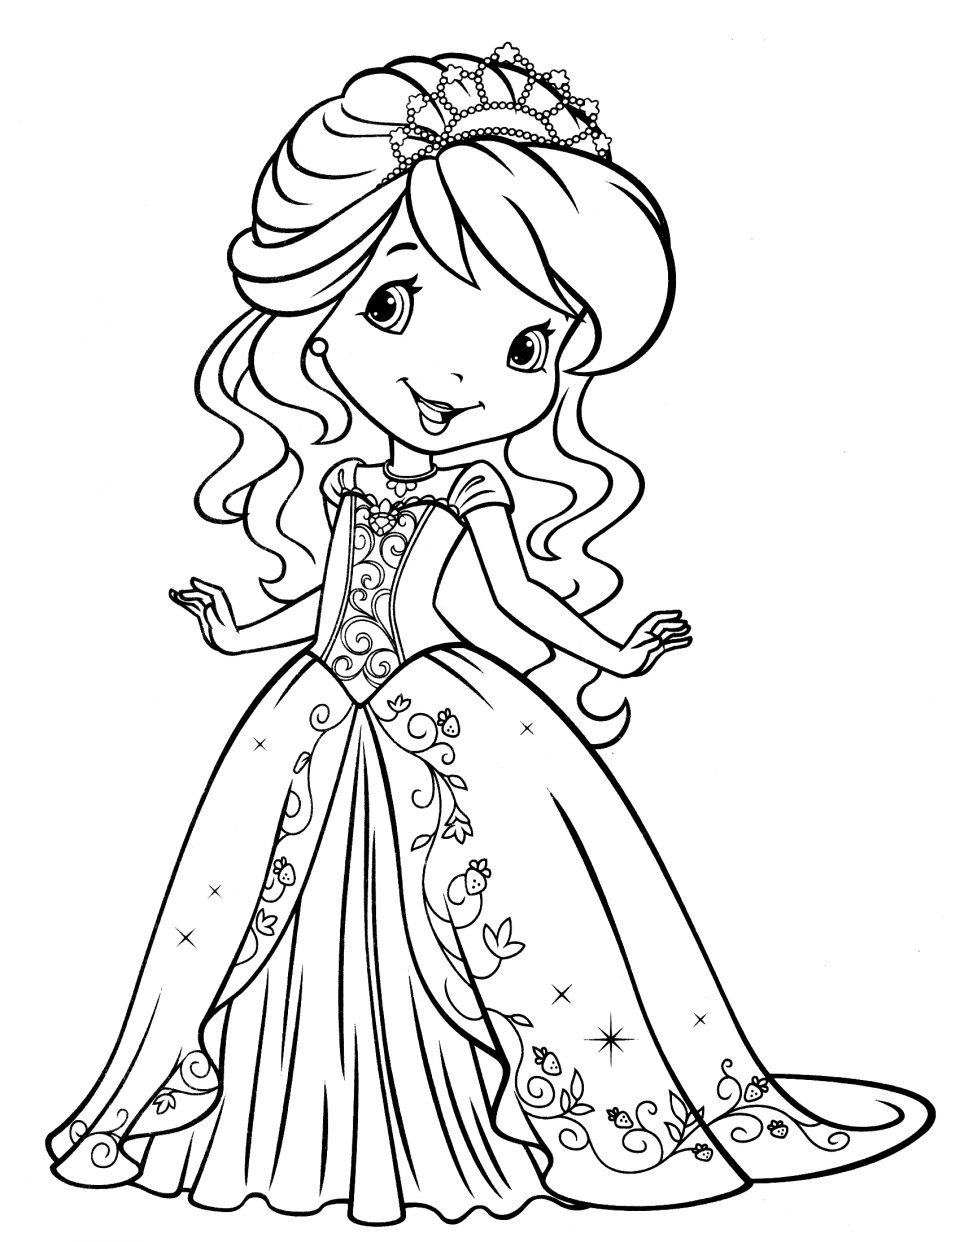 960x1242 Americanirl Coloring Pages Mckenna Dollrace Julie Samantha Lea